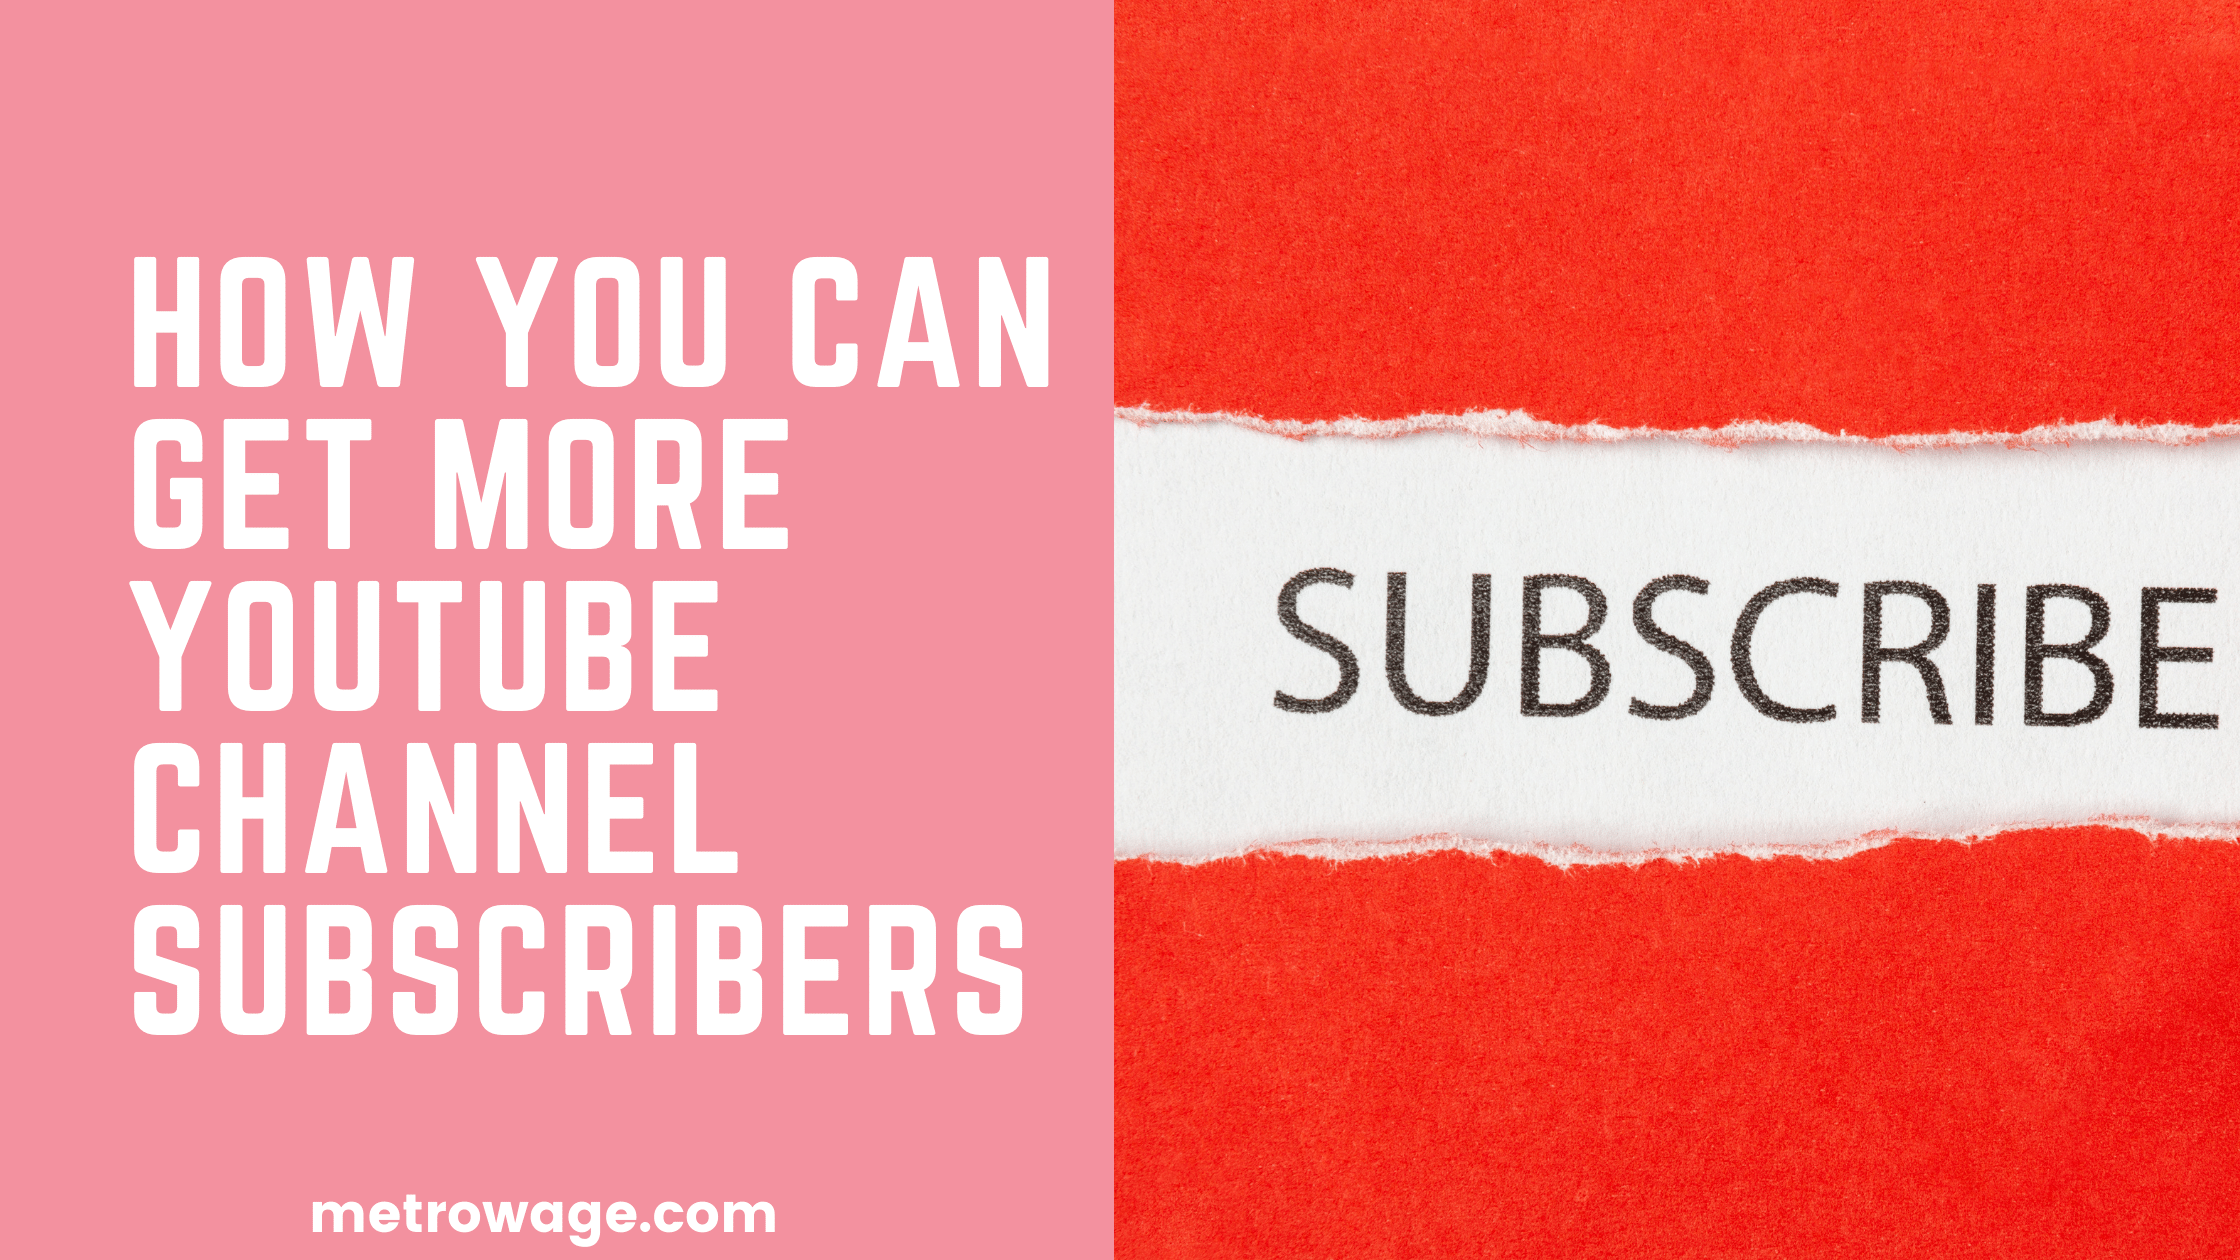 How You Can Get More YouTube Channel Subscribers